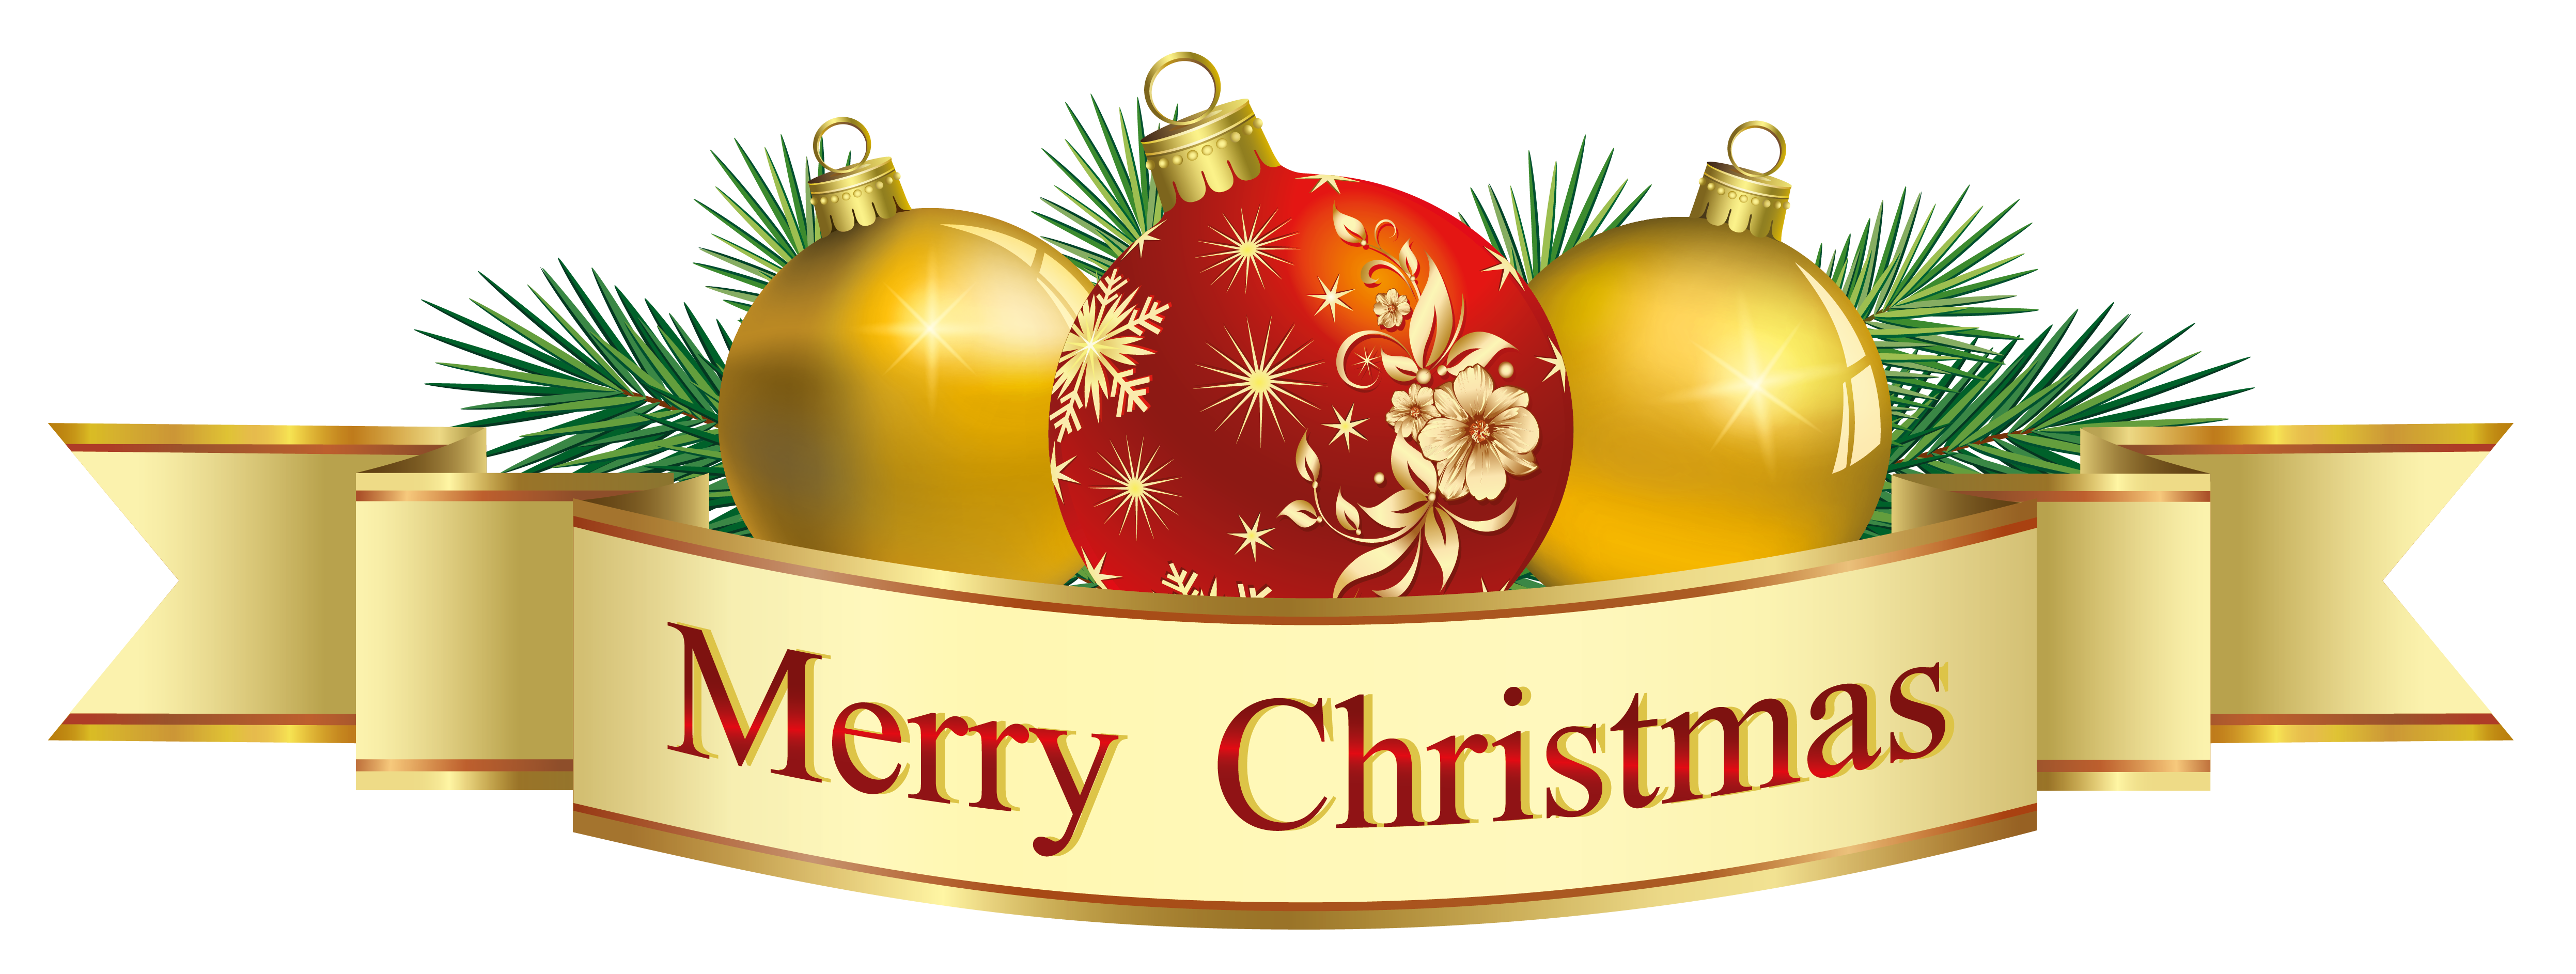 Clipart christmas food. Merry clip art images